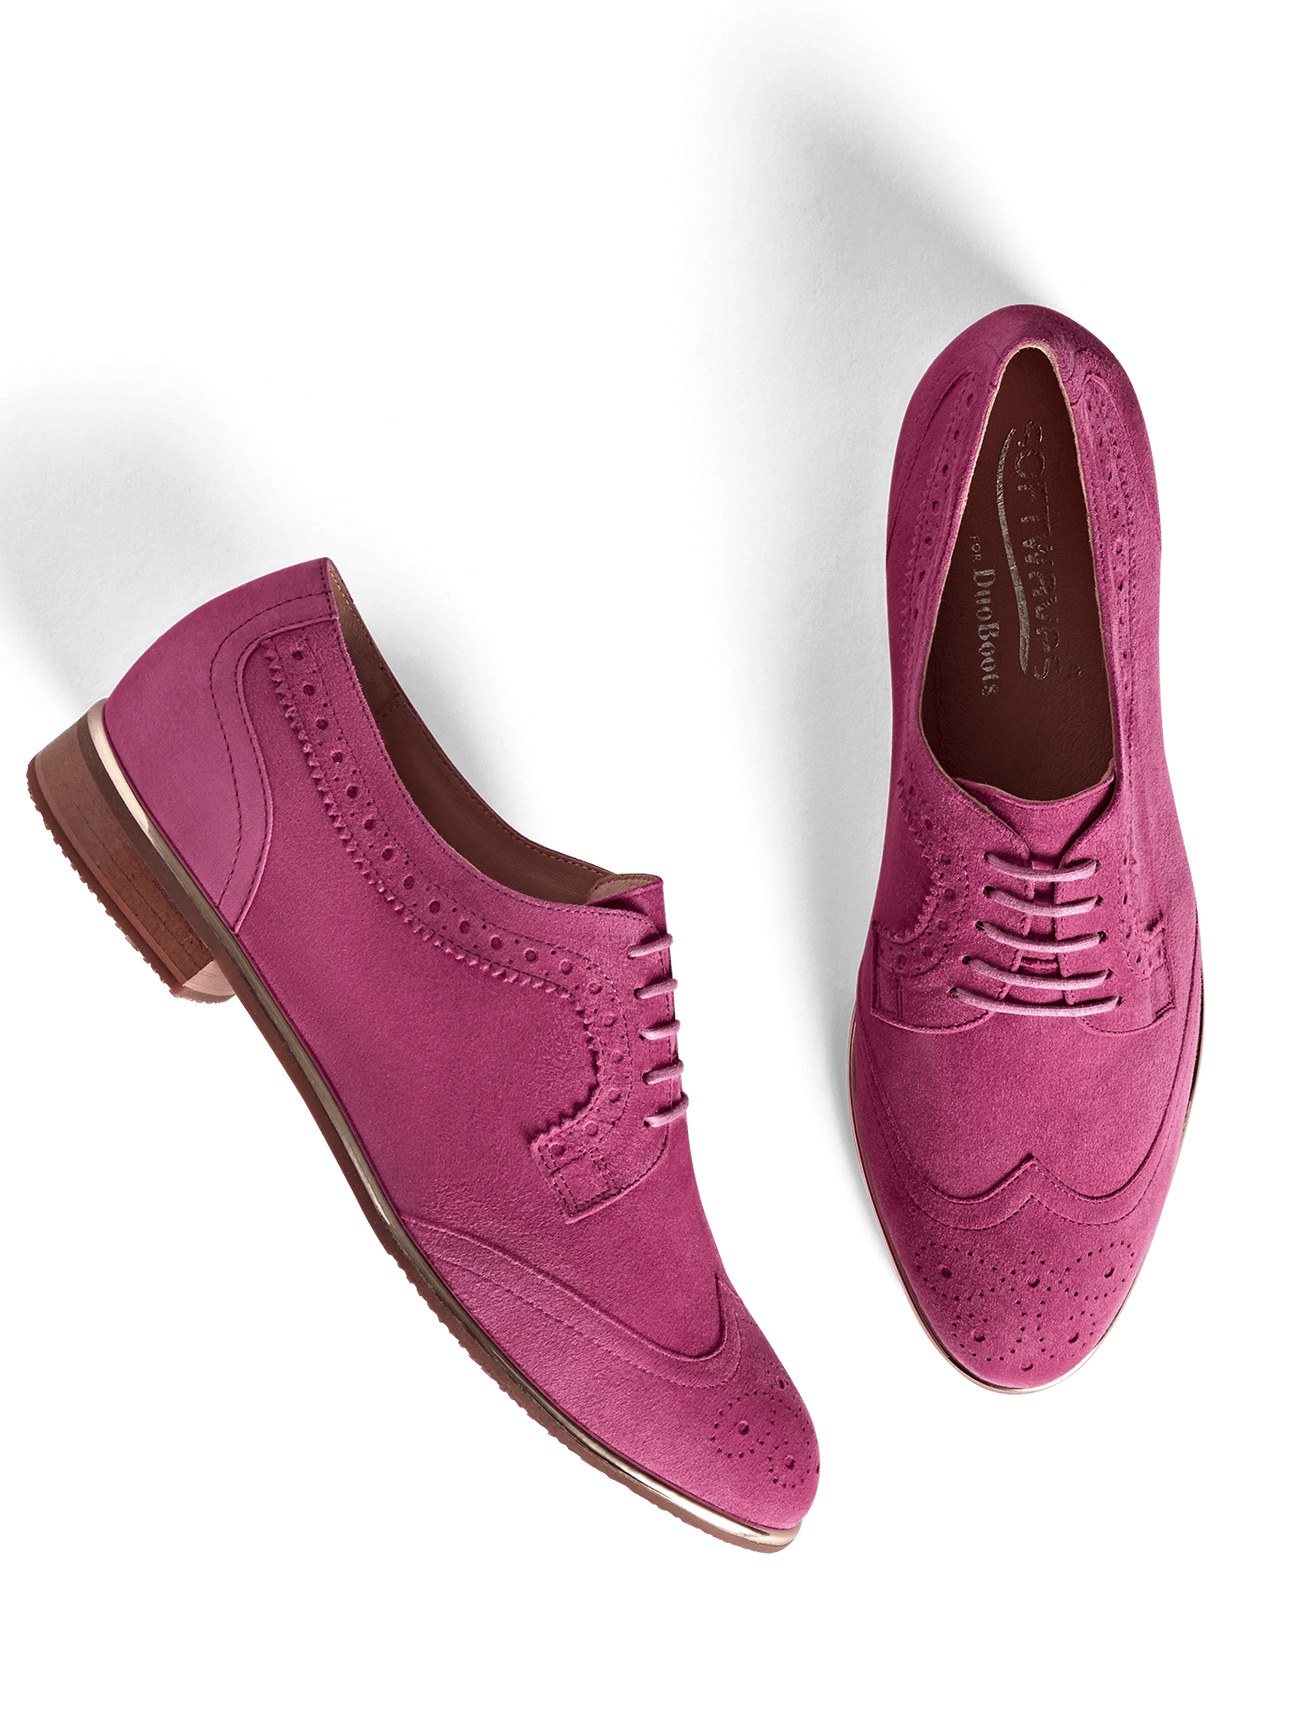 Our Mullion brogue has a padded insole and pink leather lining for extra comfort.